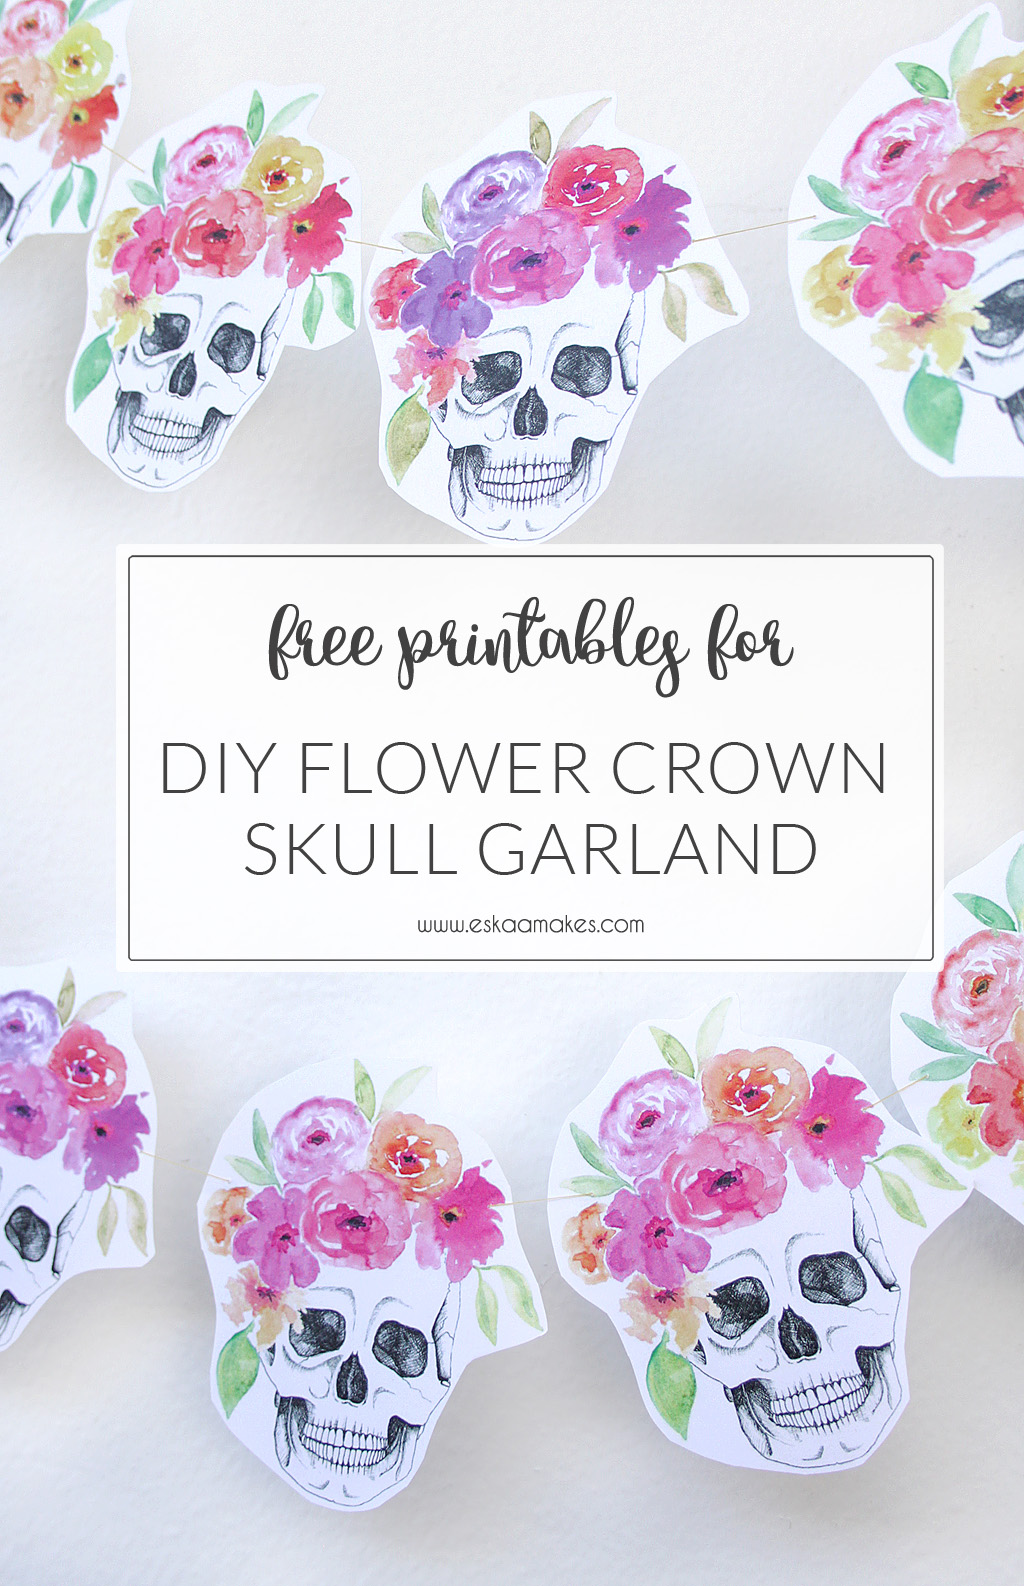 diy-flower-crown-skull-garland-title